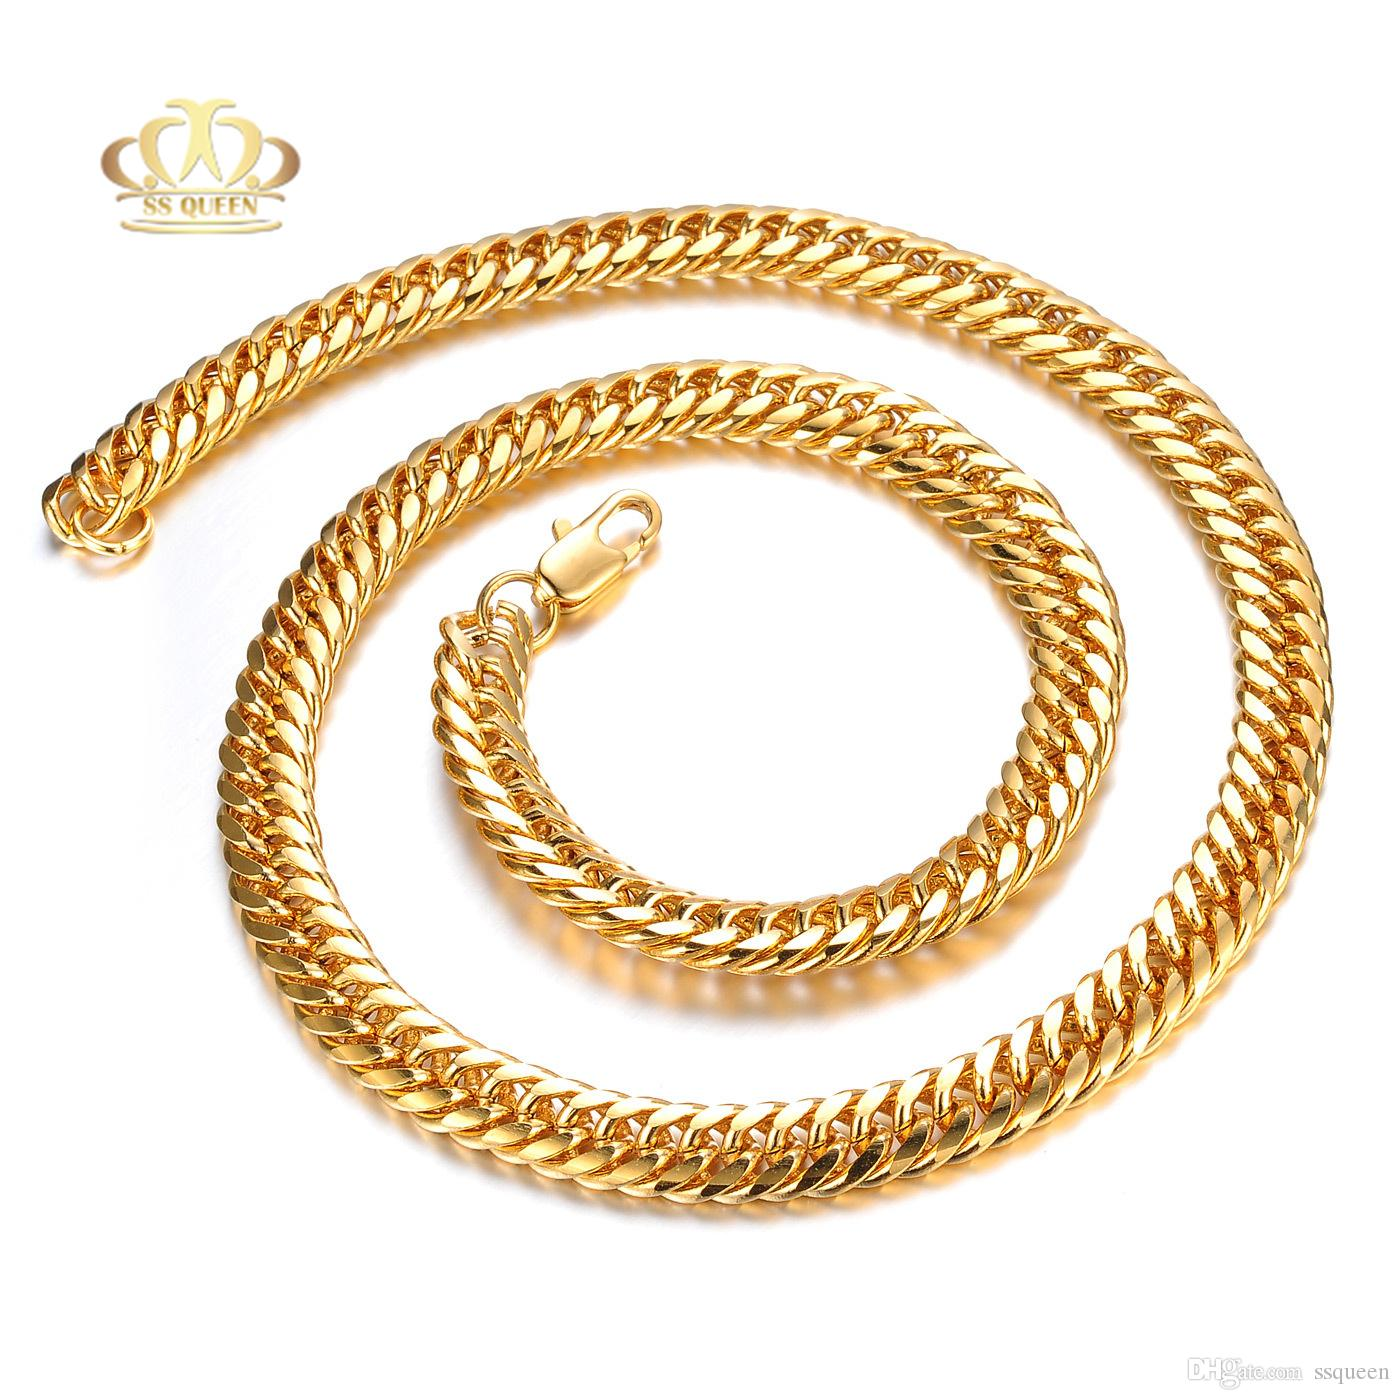 2020 2016 Trendy Gold Chain For Men Jewelry 3 Layers 18k Real Gold Plated Snake Necklace Chain From Ssqueen 10 77 Dhgate Com